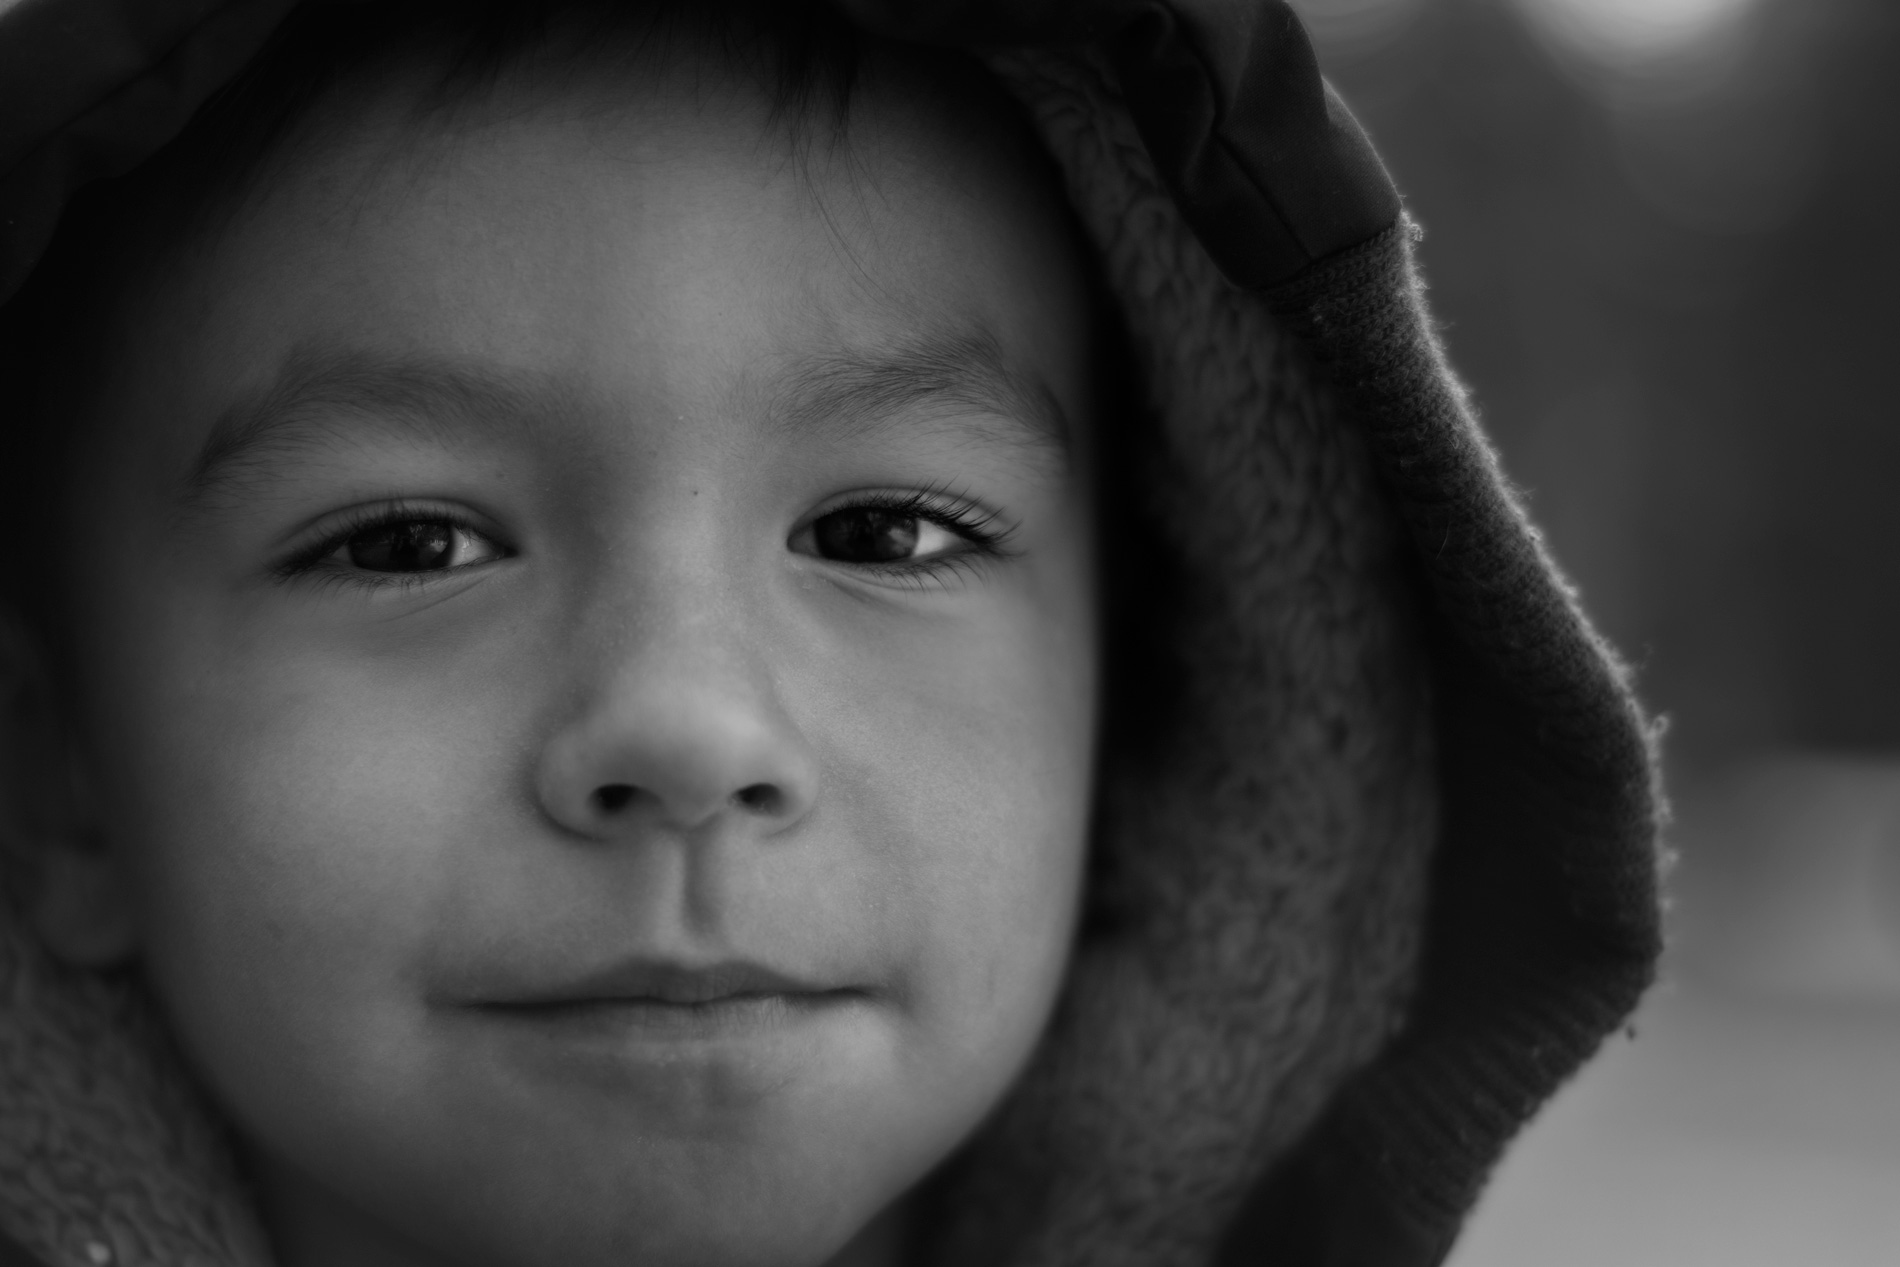 A black and white Photo of a young boy taken at Centennial Park in Thunder Bay